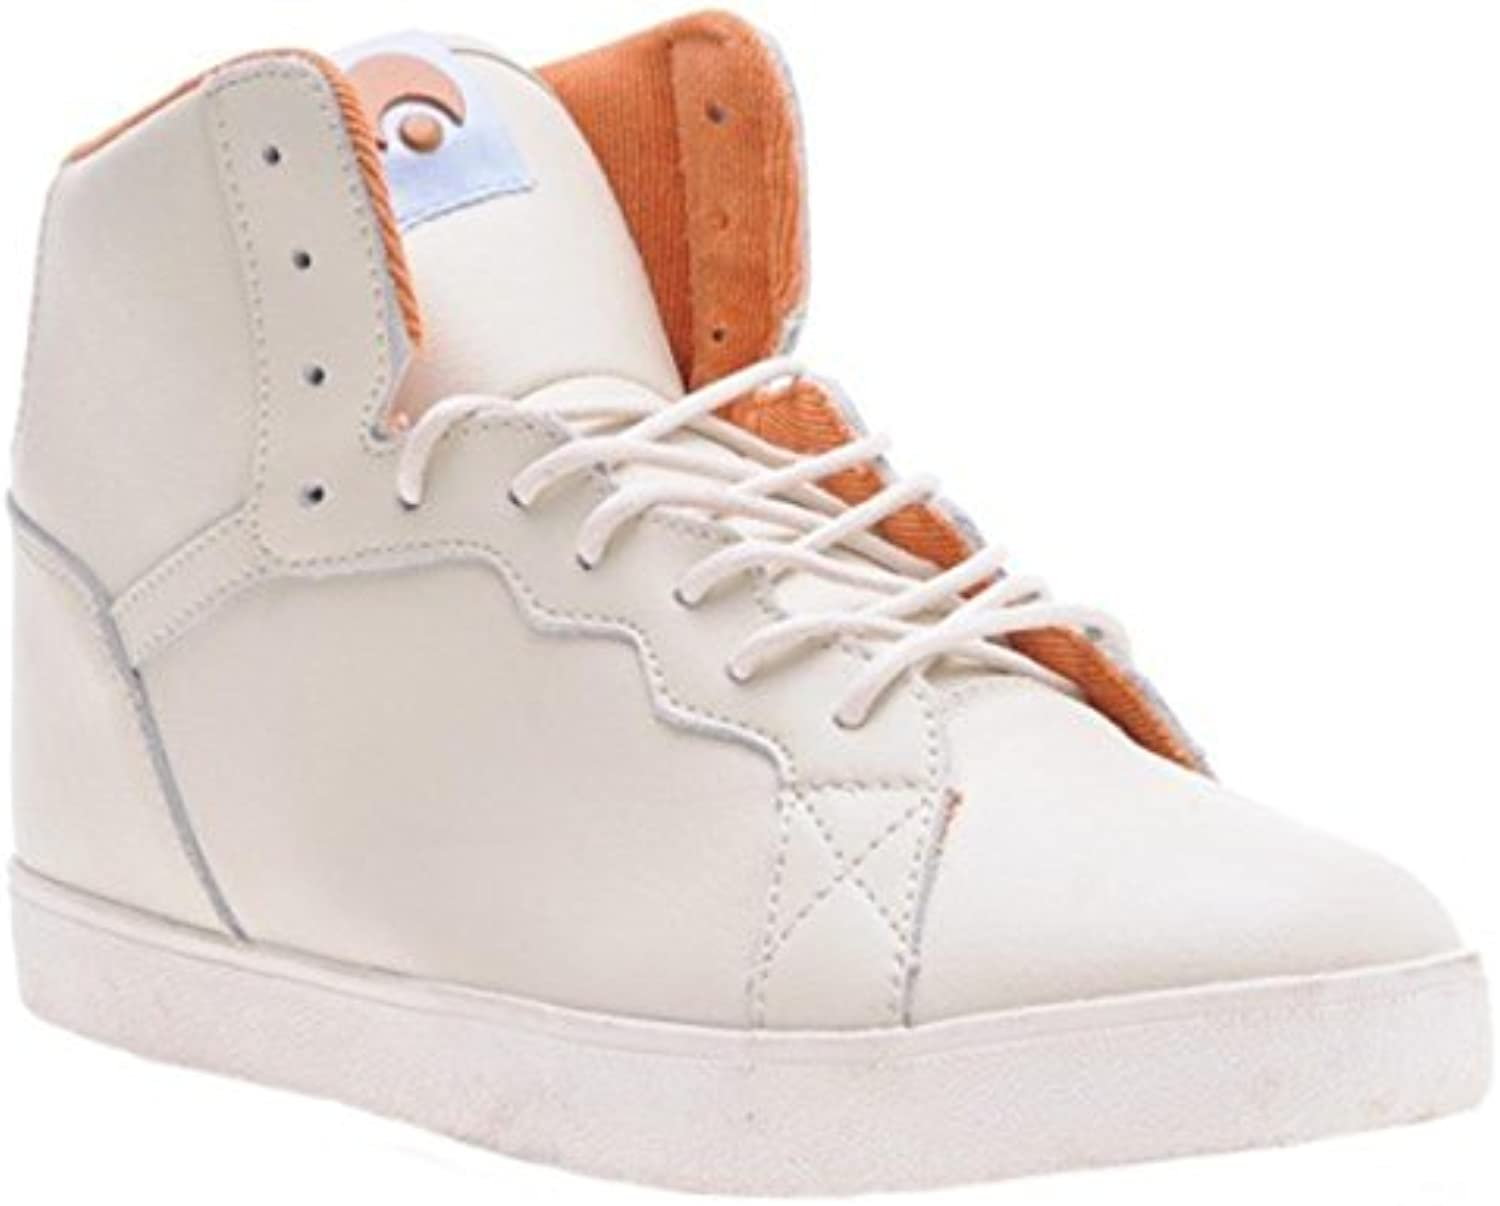 osiris patiner chaussures motif gvl gvl gvl / orange / Bleu  b00eqkc1so parent f2adac